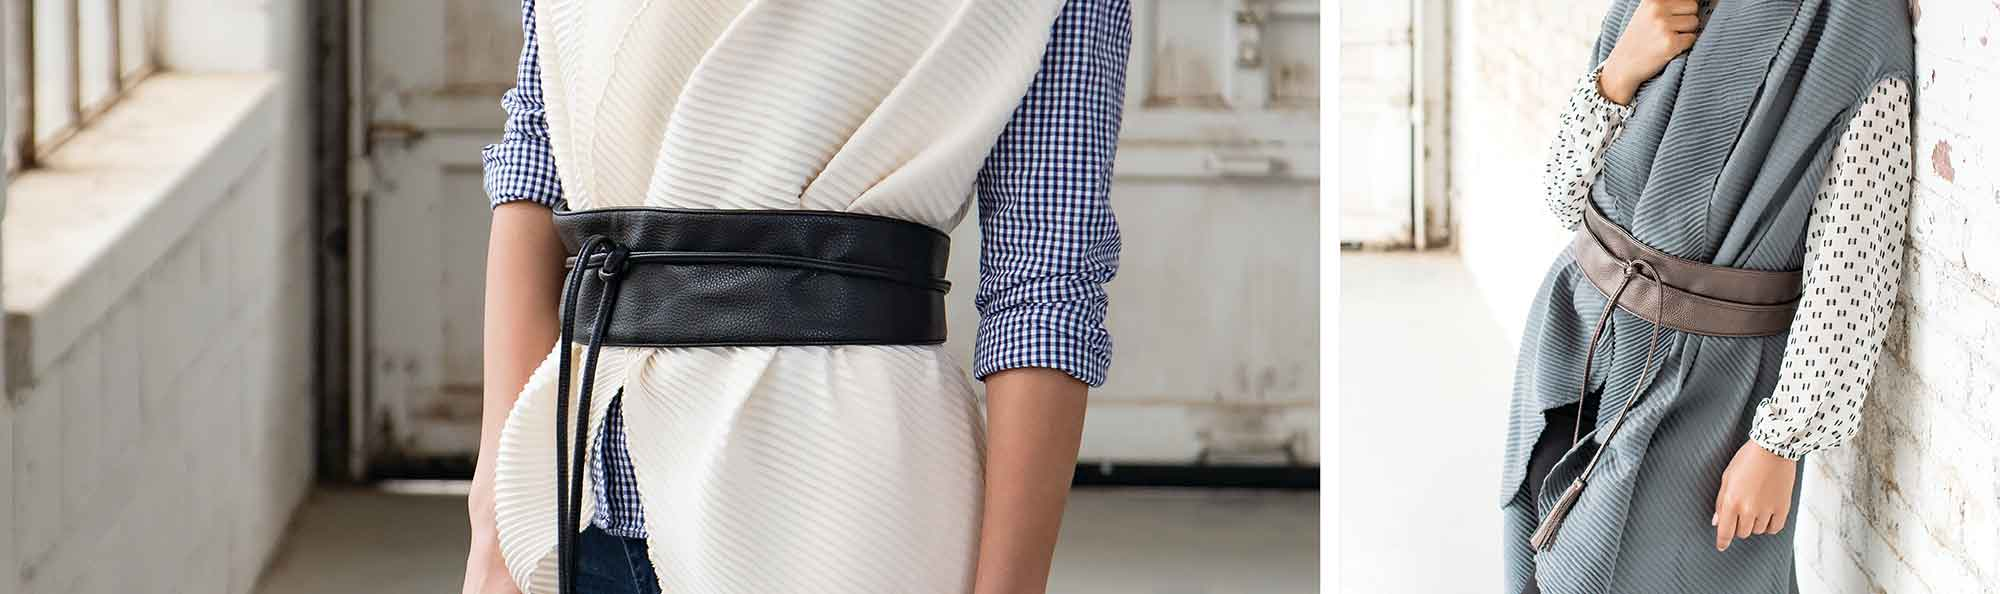 Fashionable Leather Belts that wrap around the waist on two womens